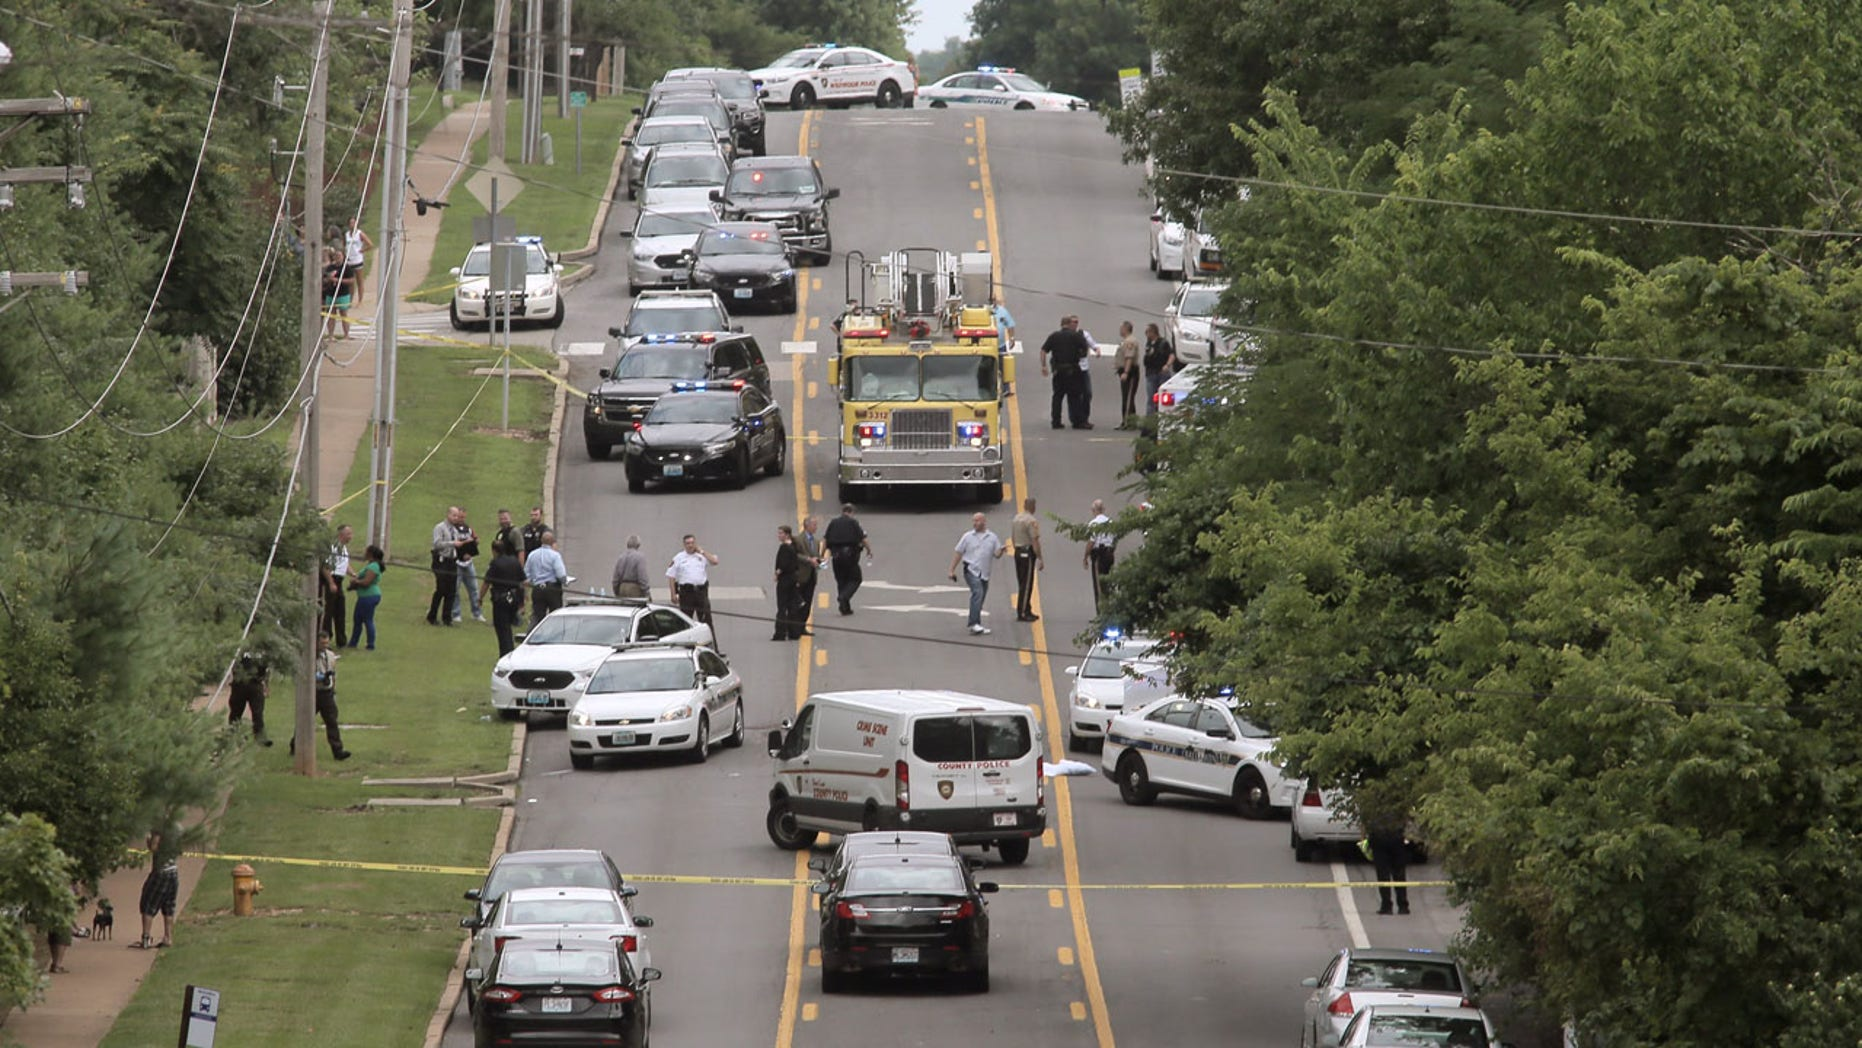 July 8, 2016: Police investigate a scene in Ballwin, Mo. after a police officer was shot during a confrontation with a man on a street.